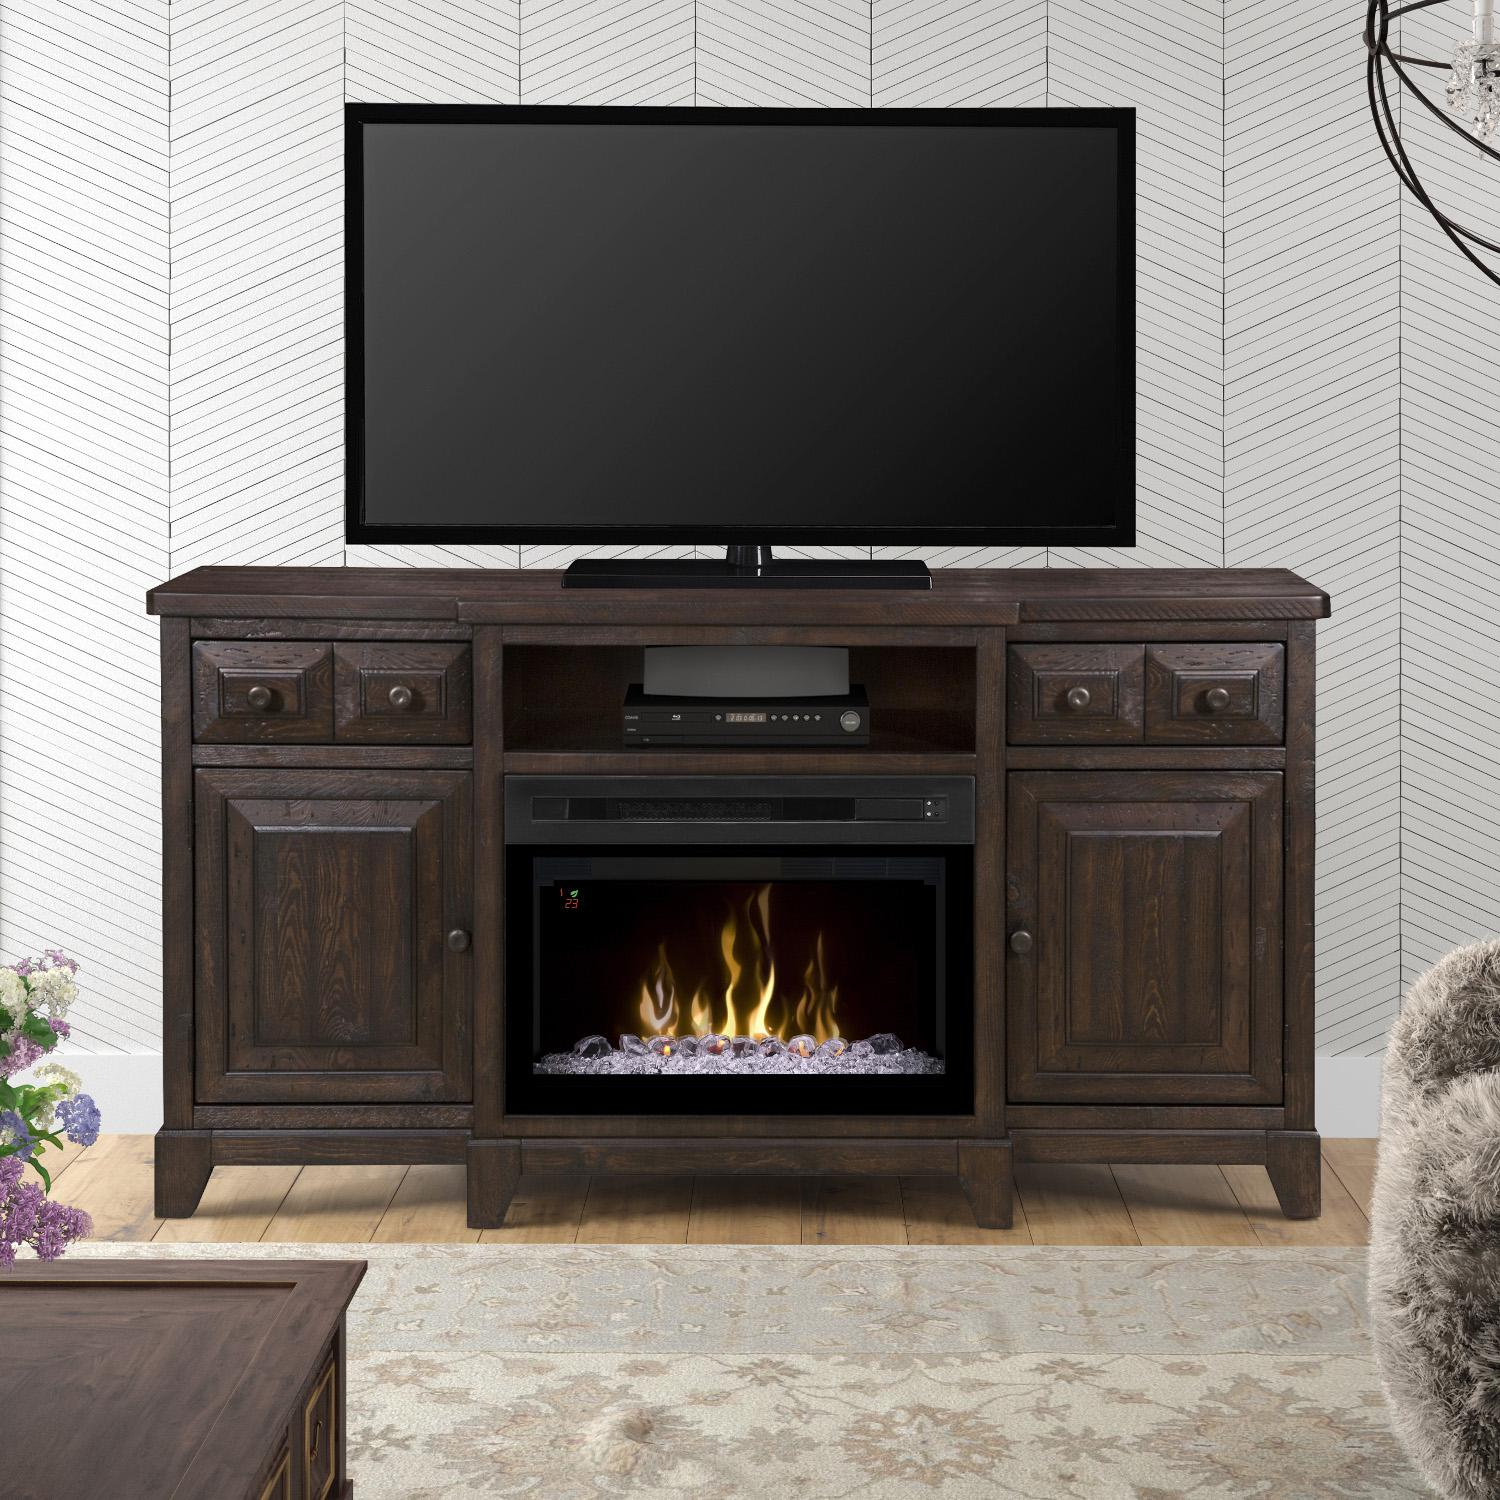 Dimplex Multi-Fire XD Heinrich 66-Inch Electric Fireplace...